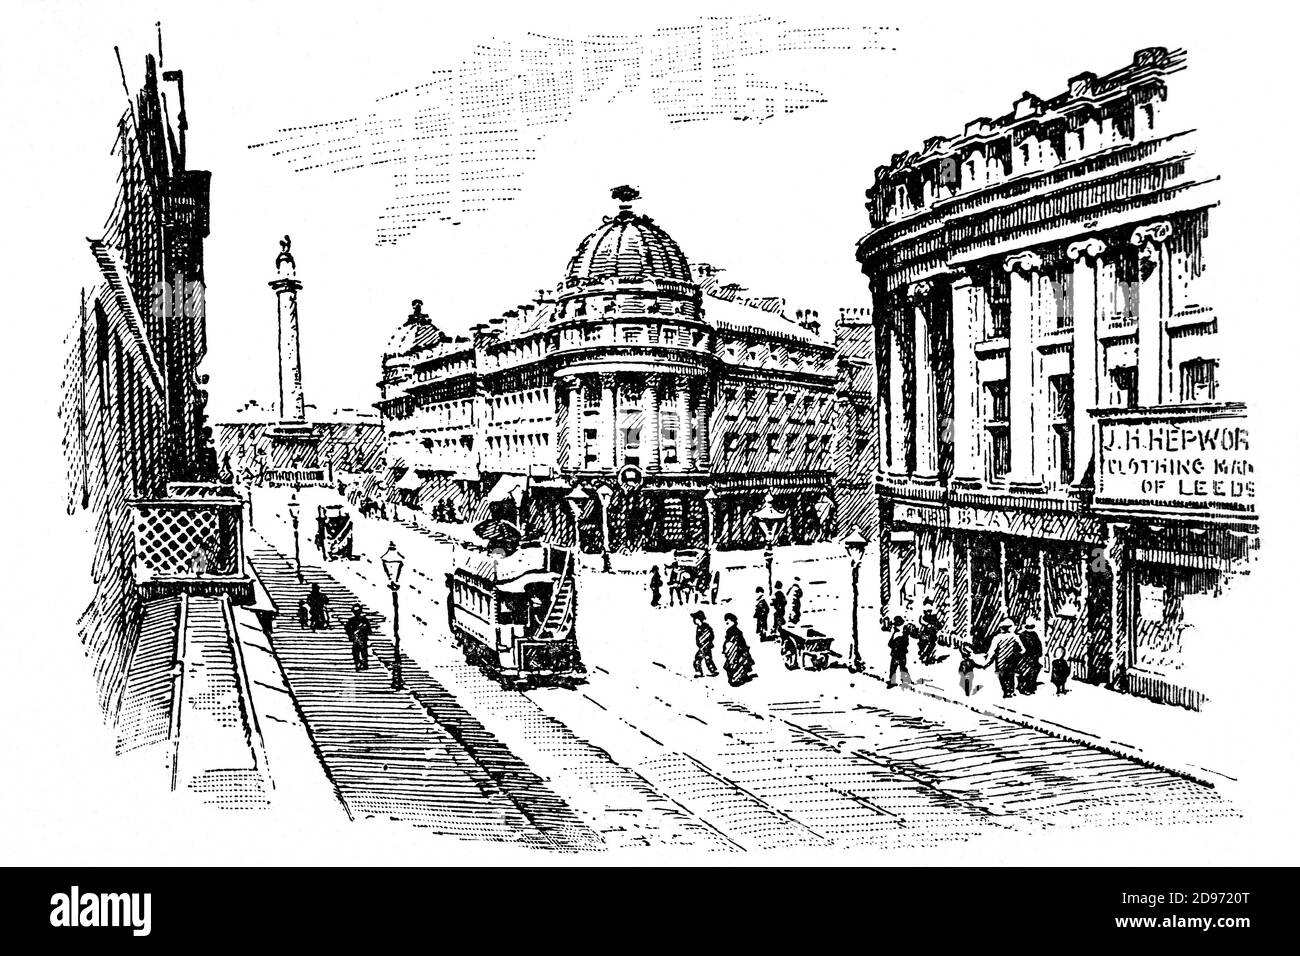 A late 19th Century view of Grainger Street in the centre of Newcastle-upon-Tyne. The city centre was rebuilt, mostly by three men, John Dobson, an architect, Richard Grainger, a builder and John Clayton the town clerk. All three have streets named after them. Stock Photo